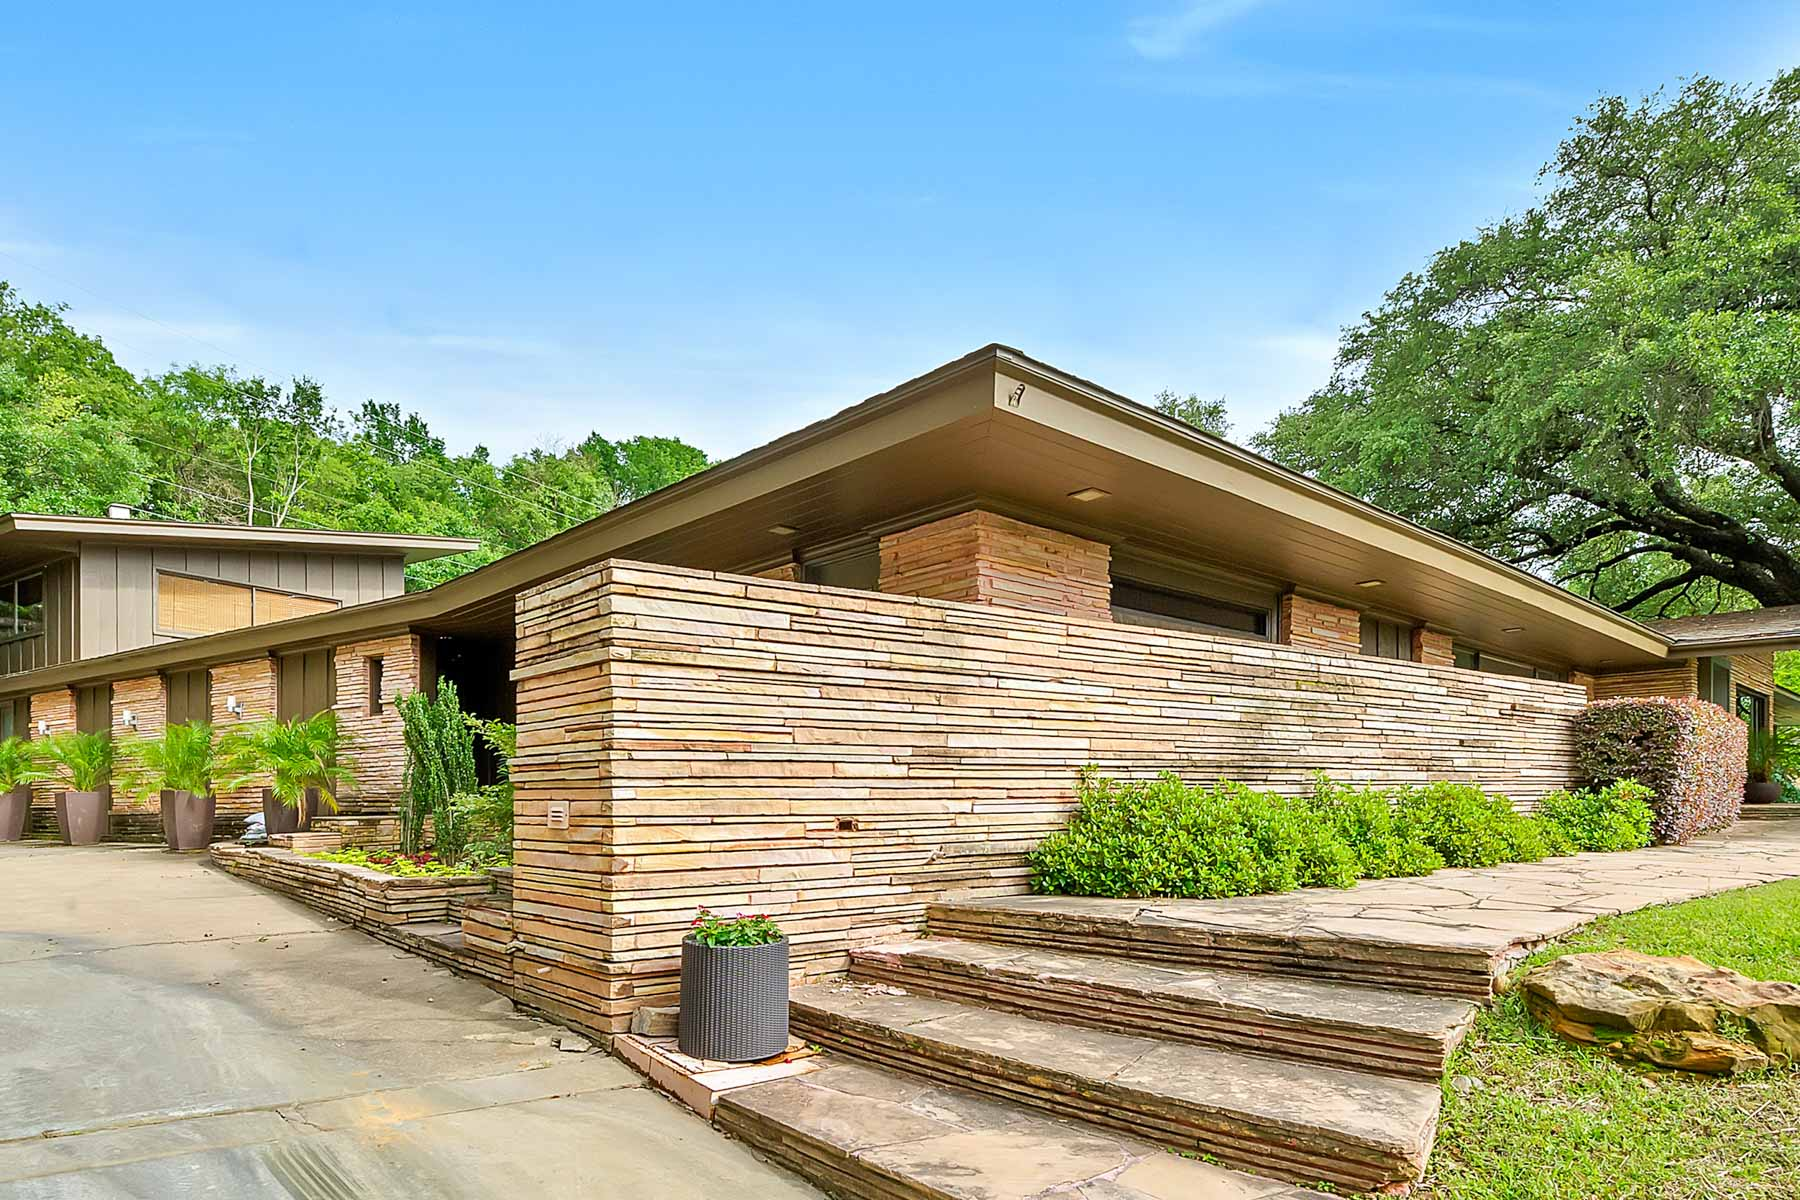 Villa per Vendita alle ore 309 Hazelwood Dr Fort Worth, Texas, 76107 Stati Uniti